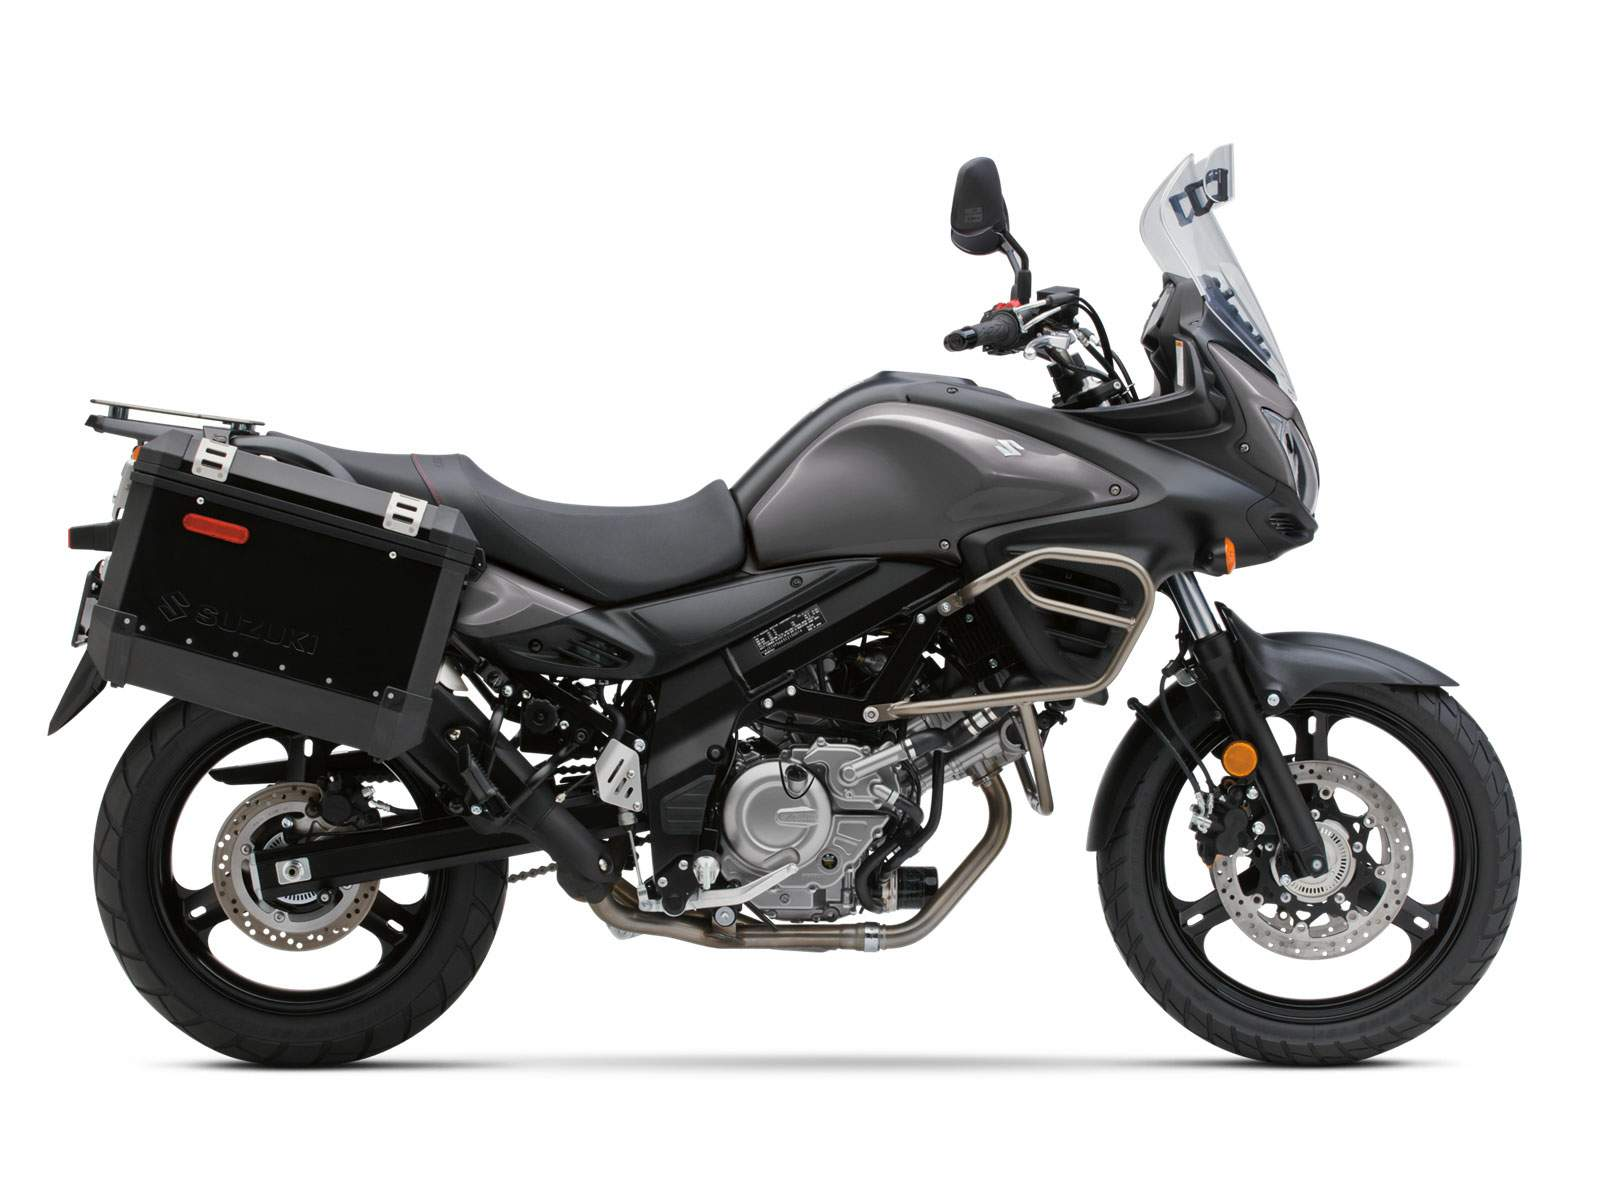 Мотоцикл Suzuki DL 650 V-Strom Adventure 2015